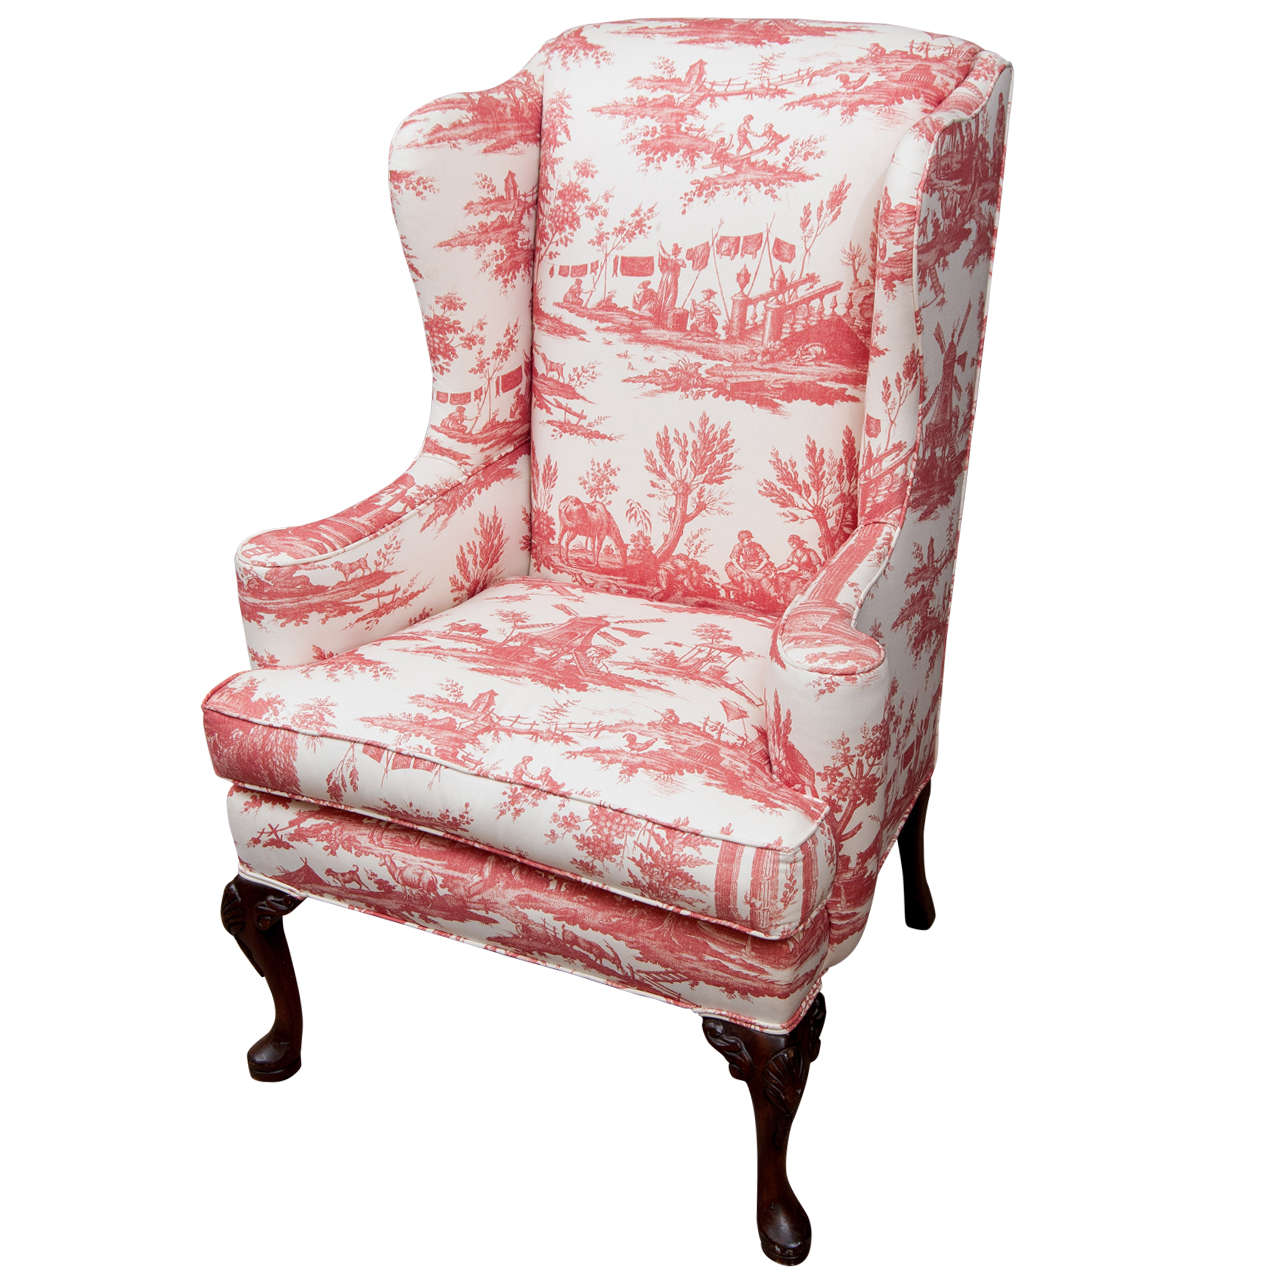 Featured Image of Queen Anne Chair And The Antique Sense Of It